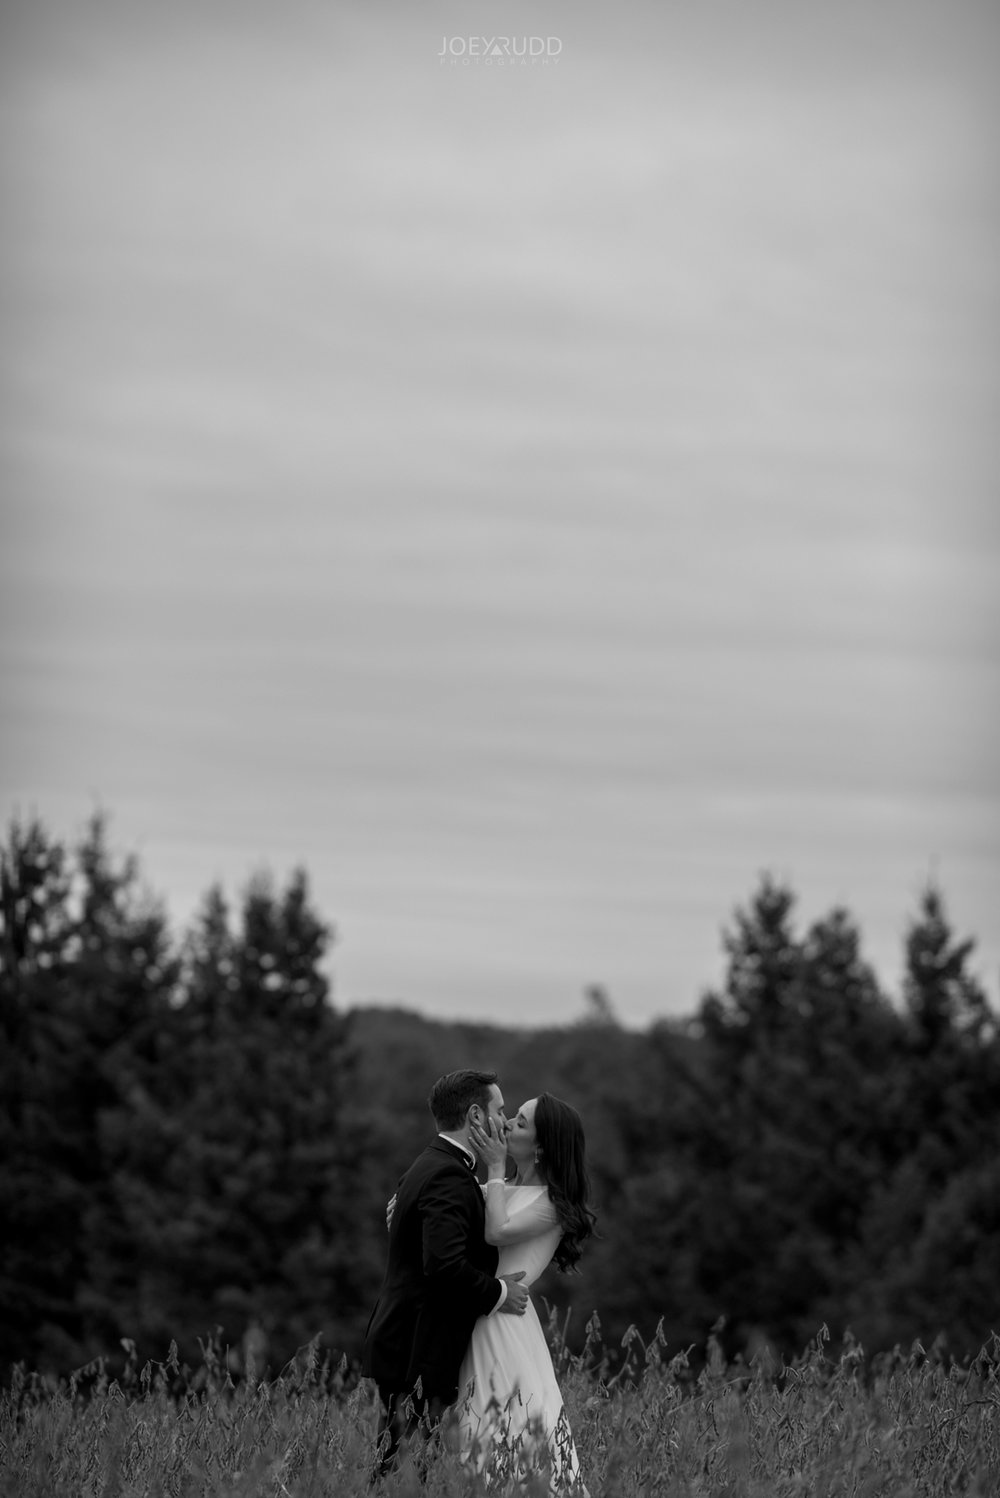 2018_10_07---Aksana-&-Mark-714TopRight.jpgEvermore Wedding, Evermore Wedding and Events, Ottawa Wedding, Almonte Wedding, Ottawa Photographer, Wedding Photography, Wedding Photographer, Joey Rudd Photography, Farm Wedding, Rustic Wedding, Barn Wedding Venue, Wedding Venue, Ottawa Wedding Venue, Almonte Riverside Inn, Candid, field wedding photo, kissing